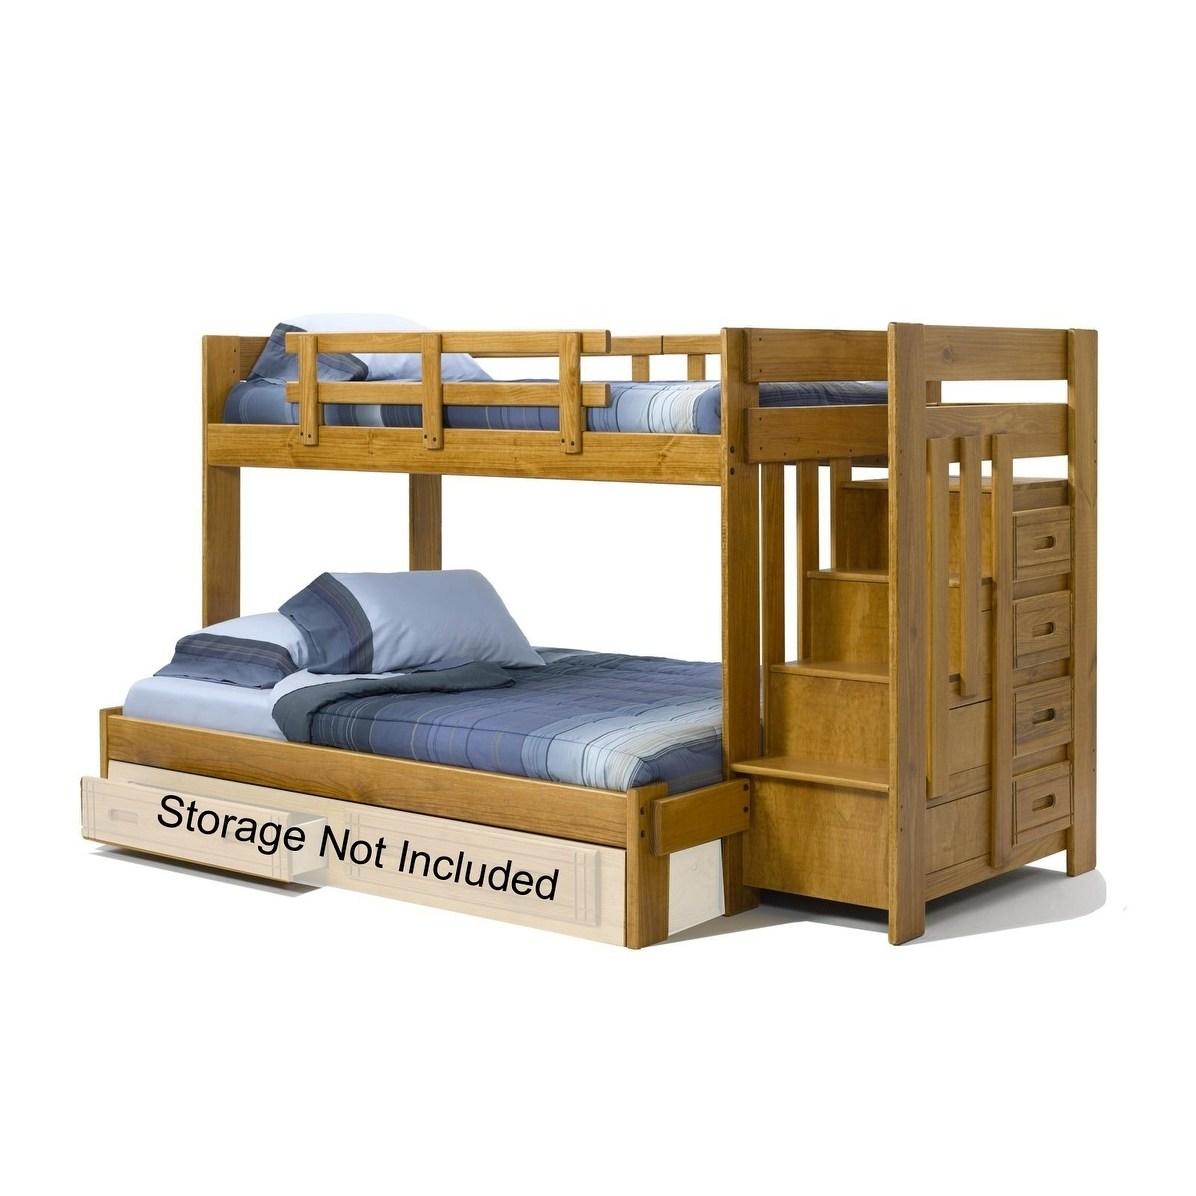 Chelsea Home Furniture Honey Twin over Full Bunk Bed with Stairway Chest